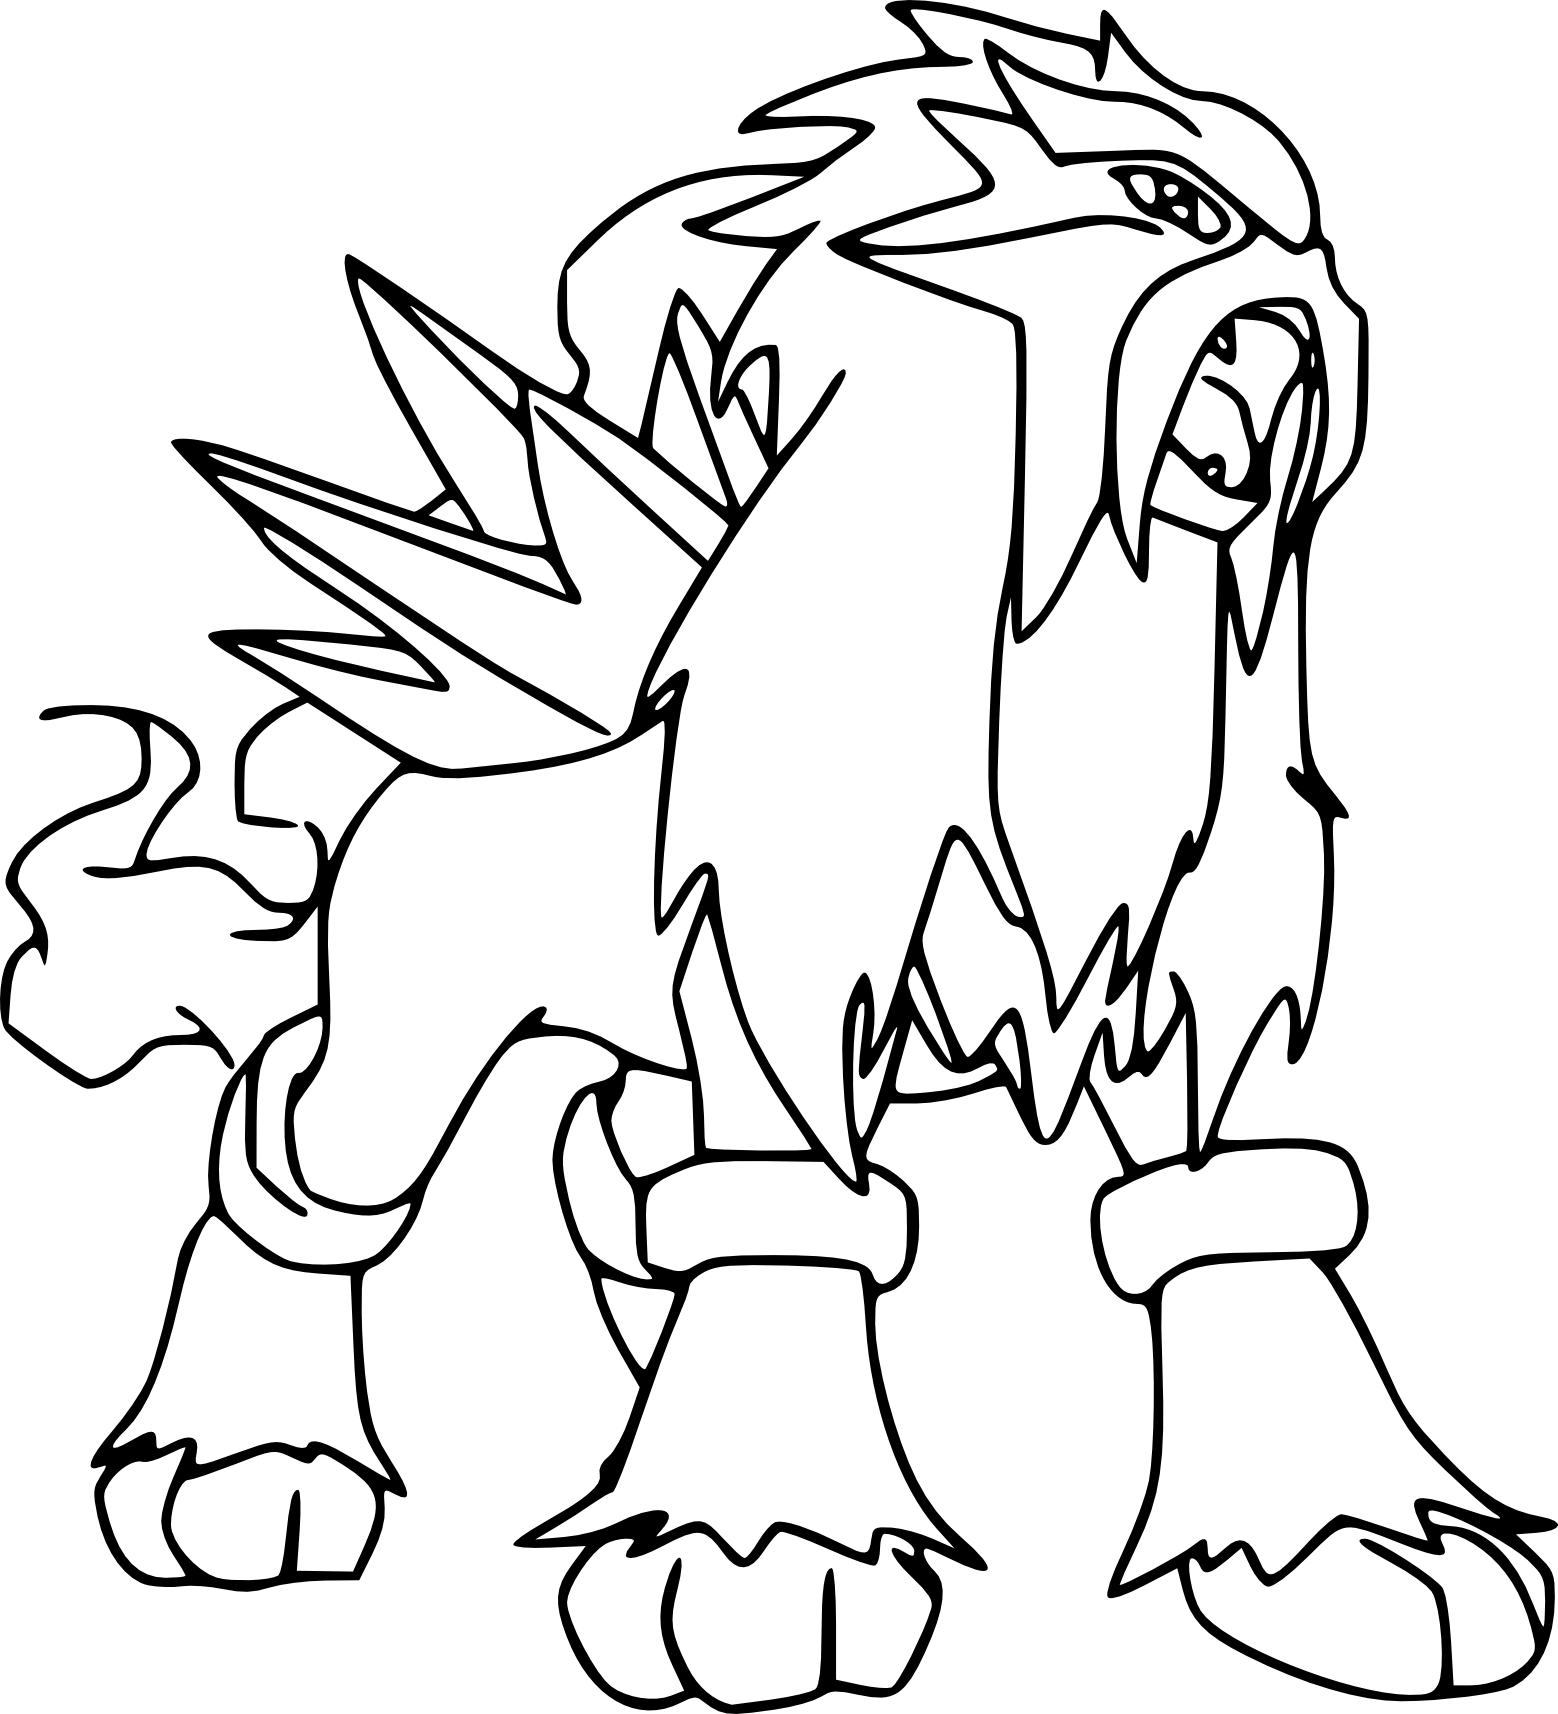 coloriage pokemon generation 6